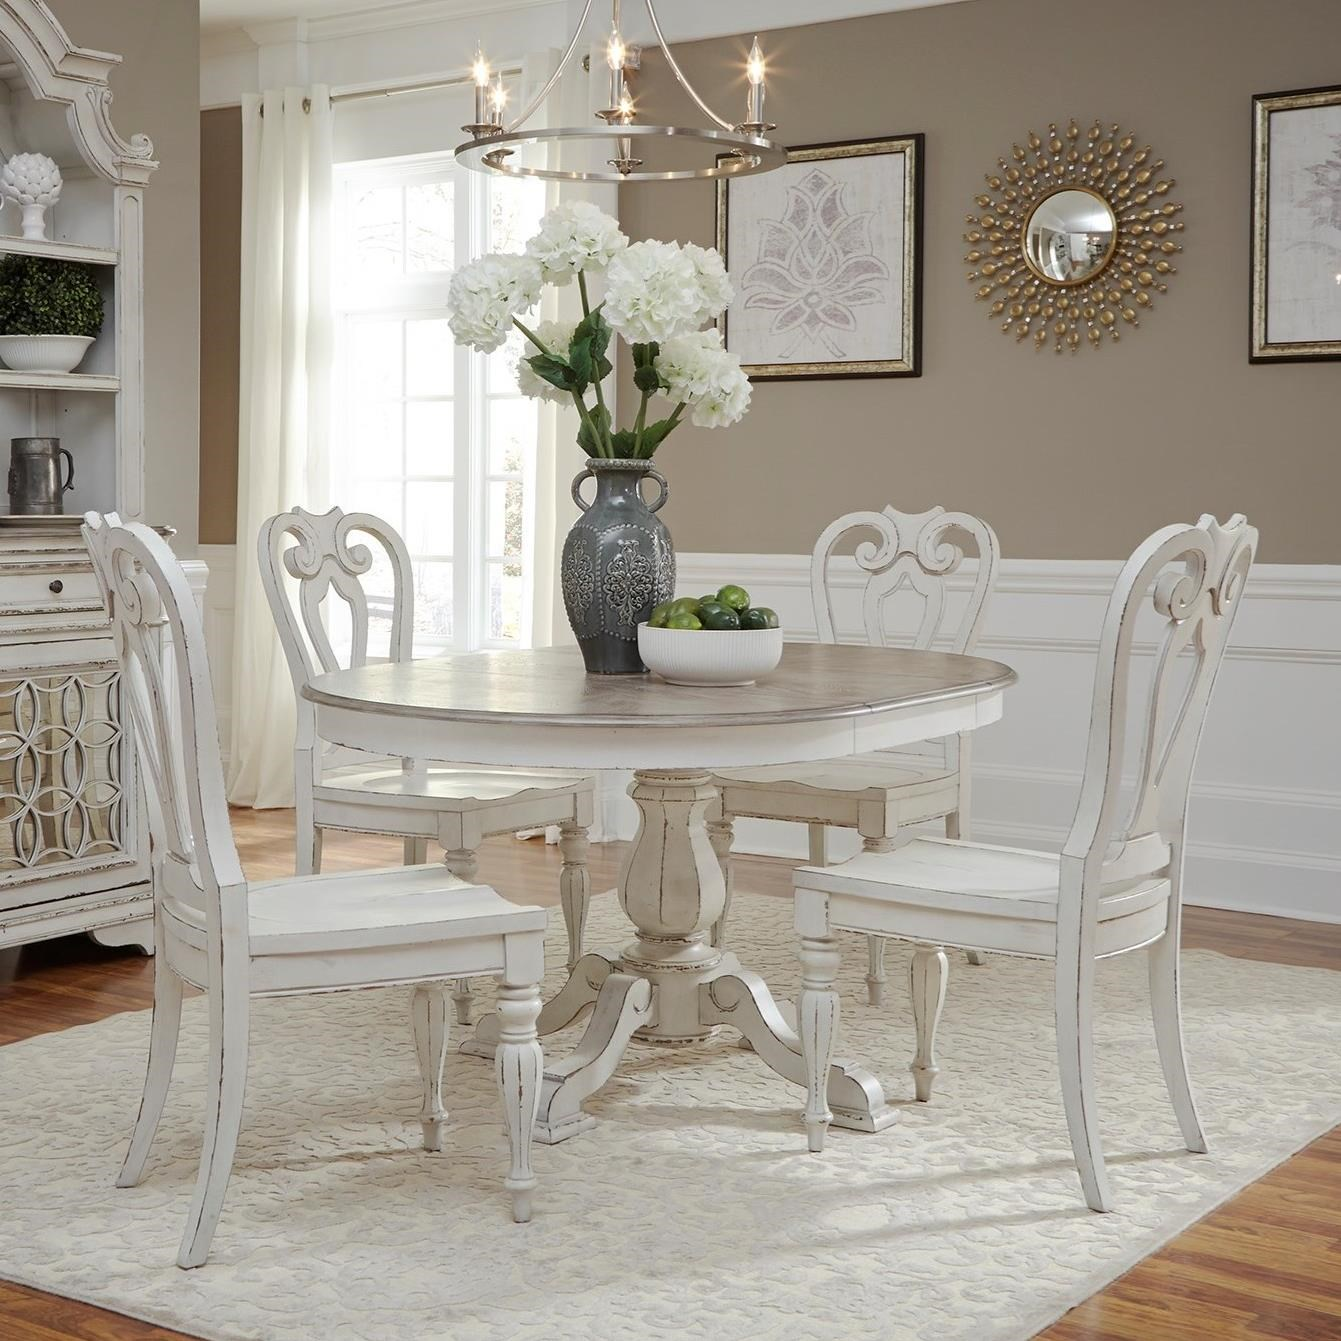 Morgan 5 Piece Chair & Table Set by Libby at Walker's Furniture